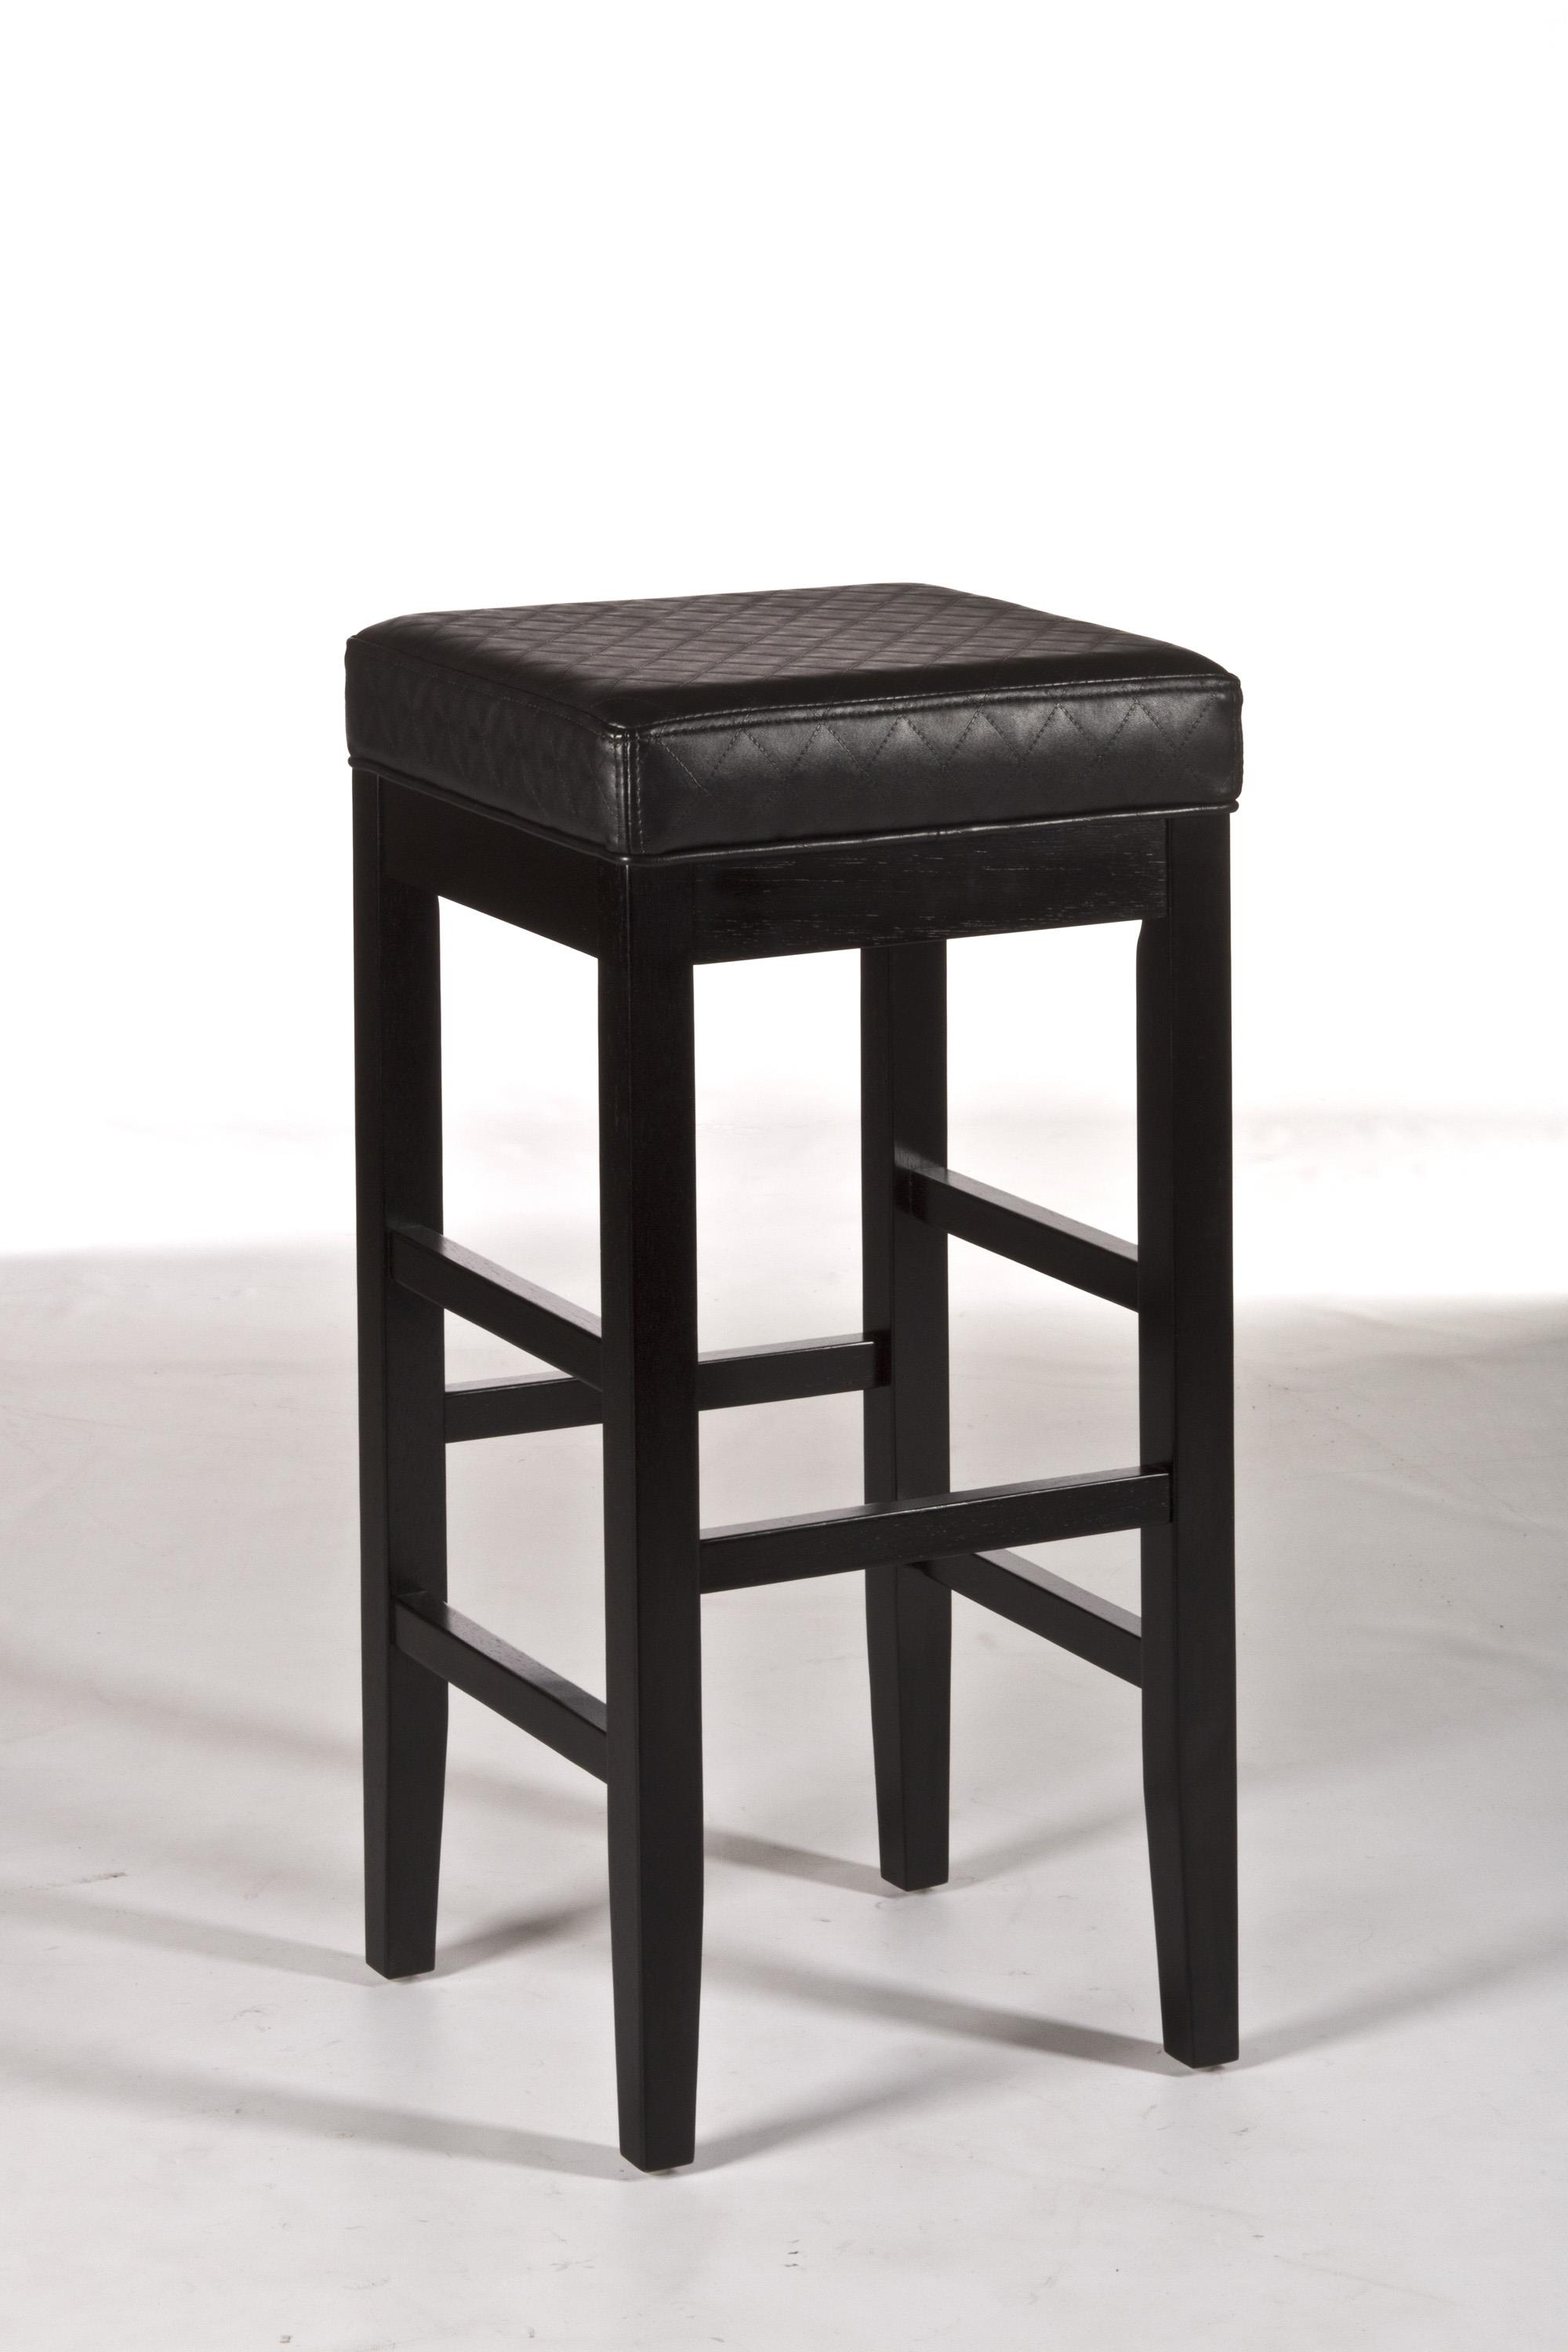 Hillsdale Backless Bar Stools Hammond Backless Counter Stool - Item Number: 5157-827